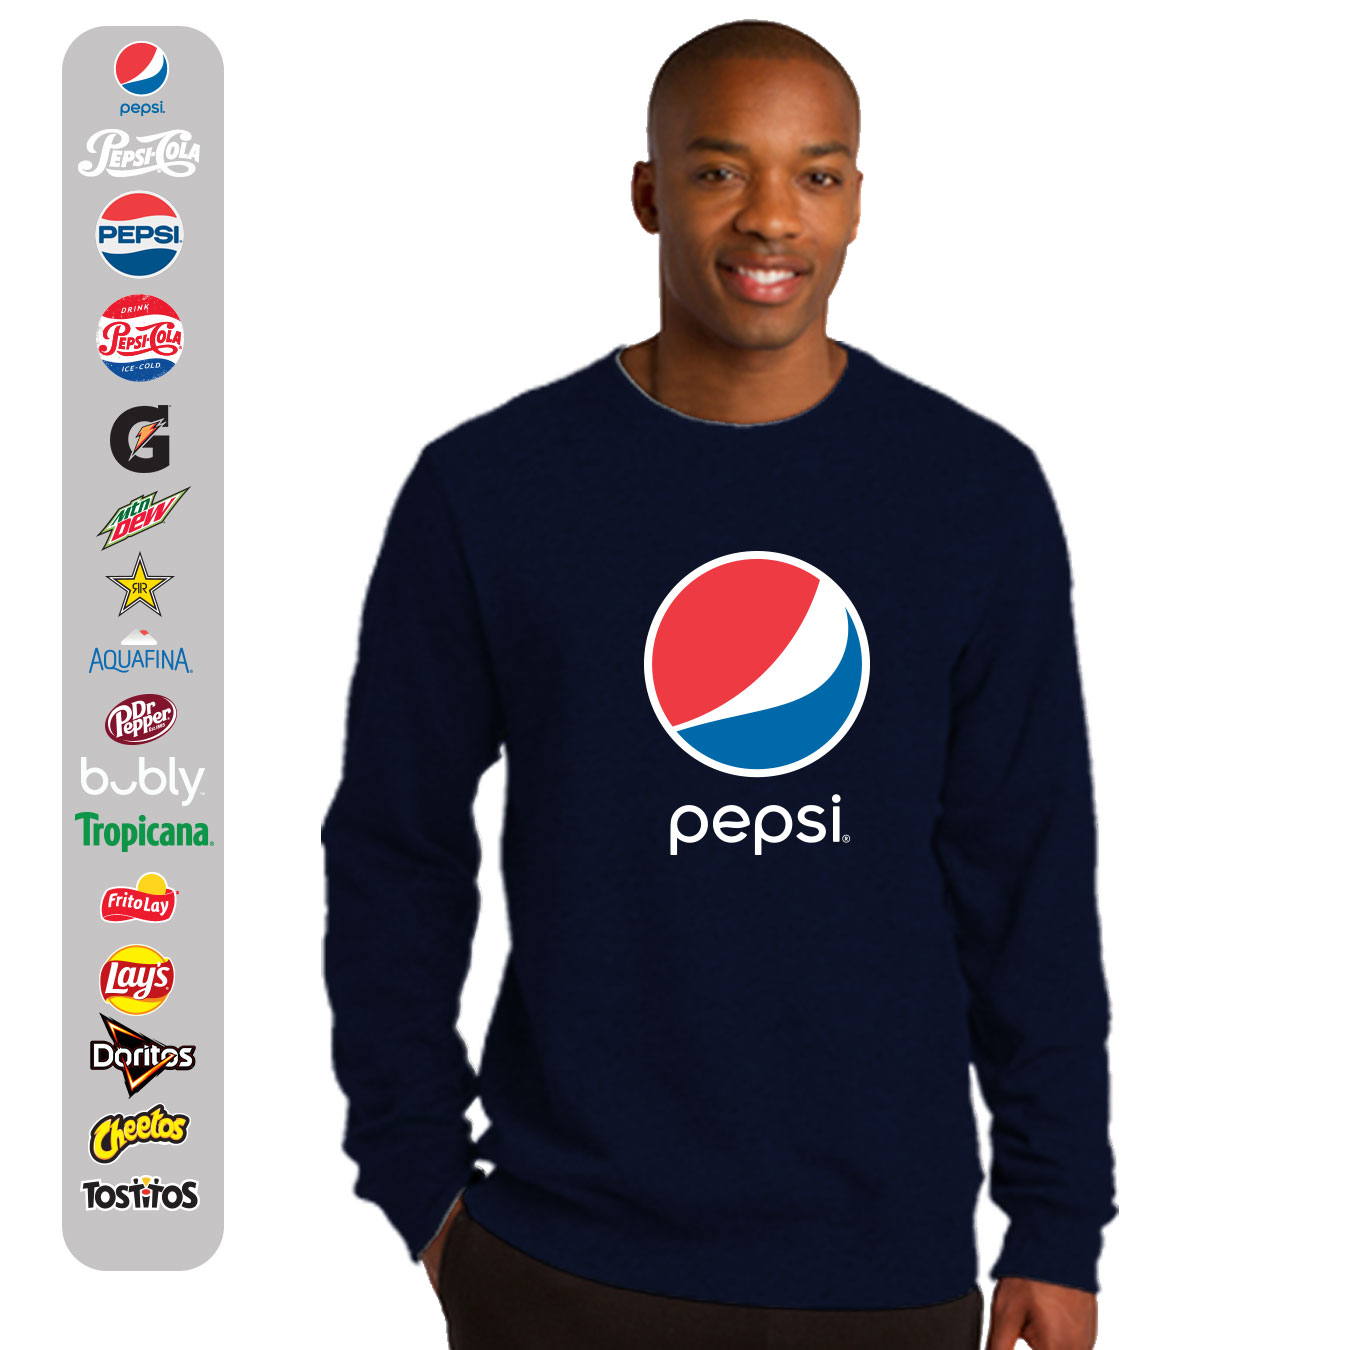 Fleece Crew Neck Sweatshirt - Pepsi